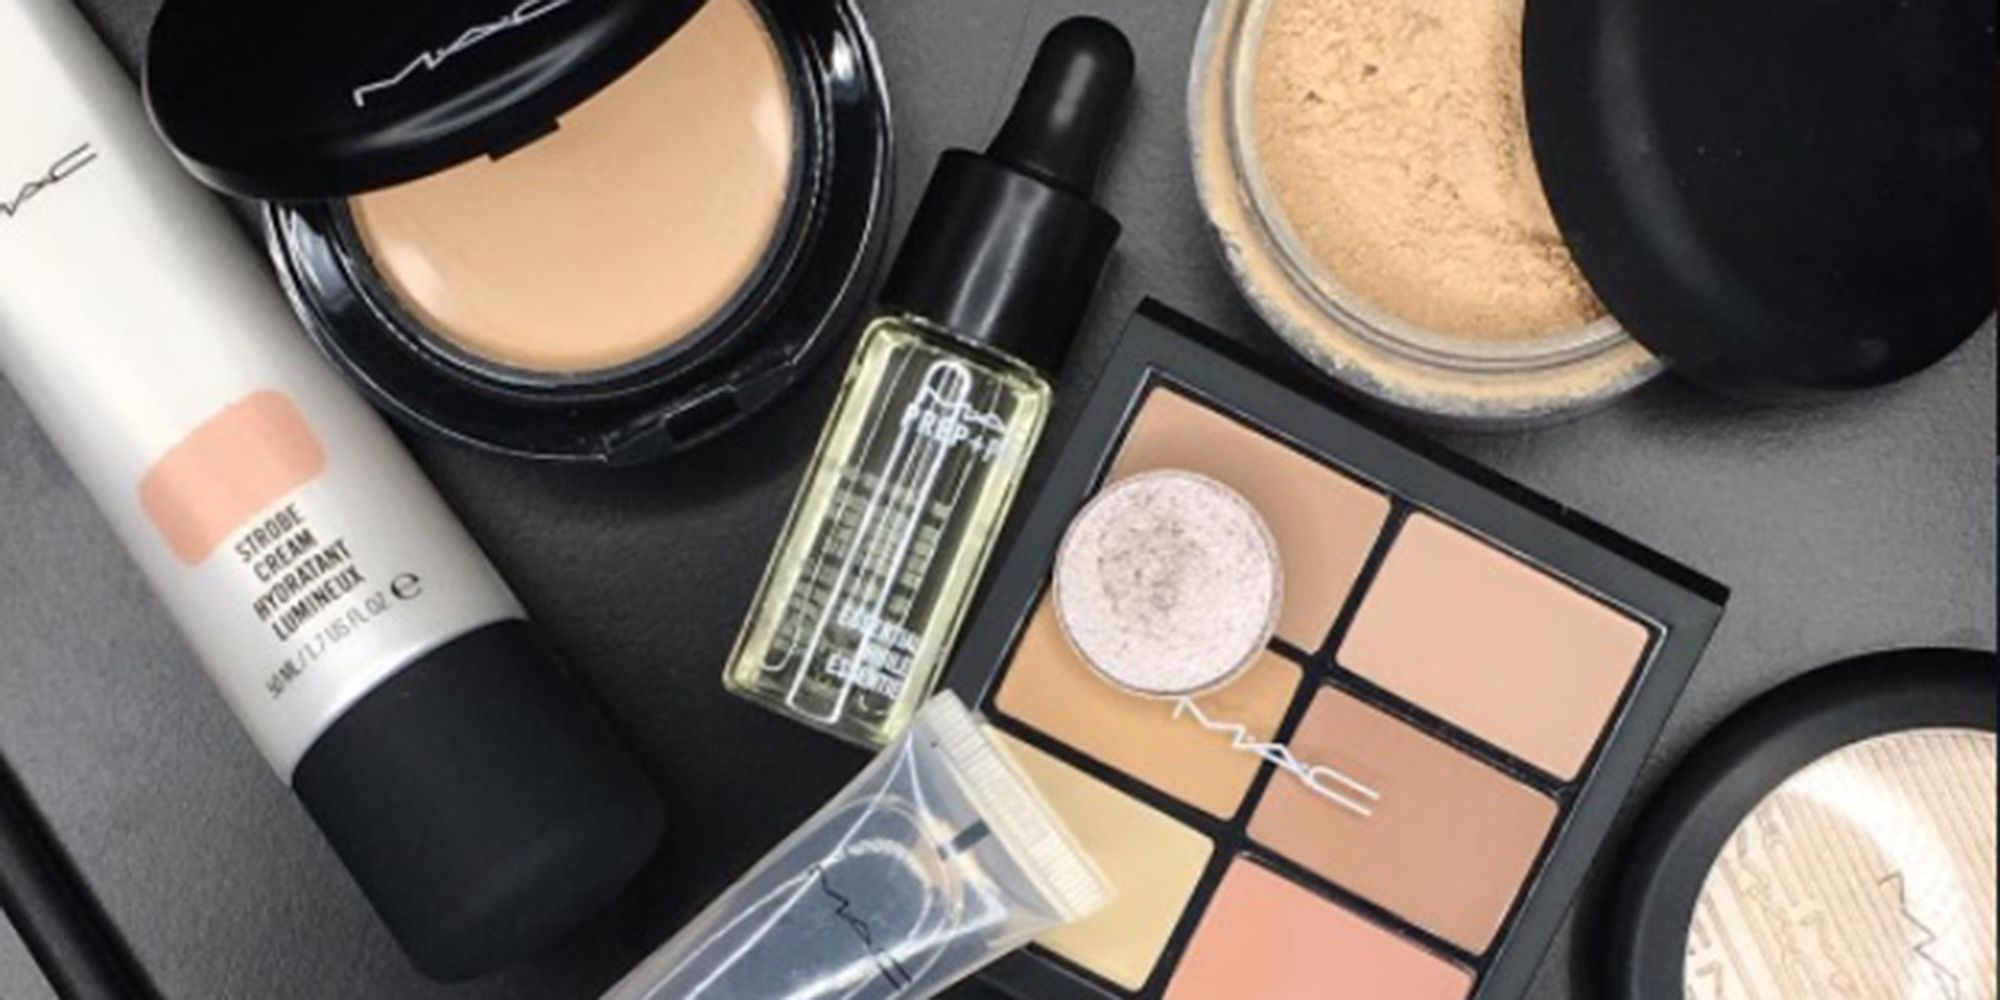 This combination of MAC products will give you the glowiest skin ever